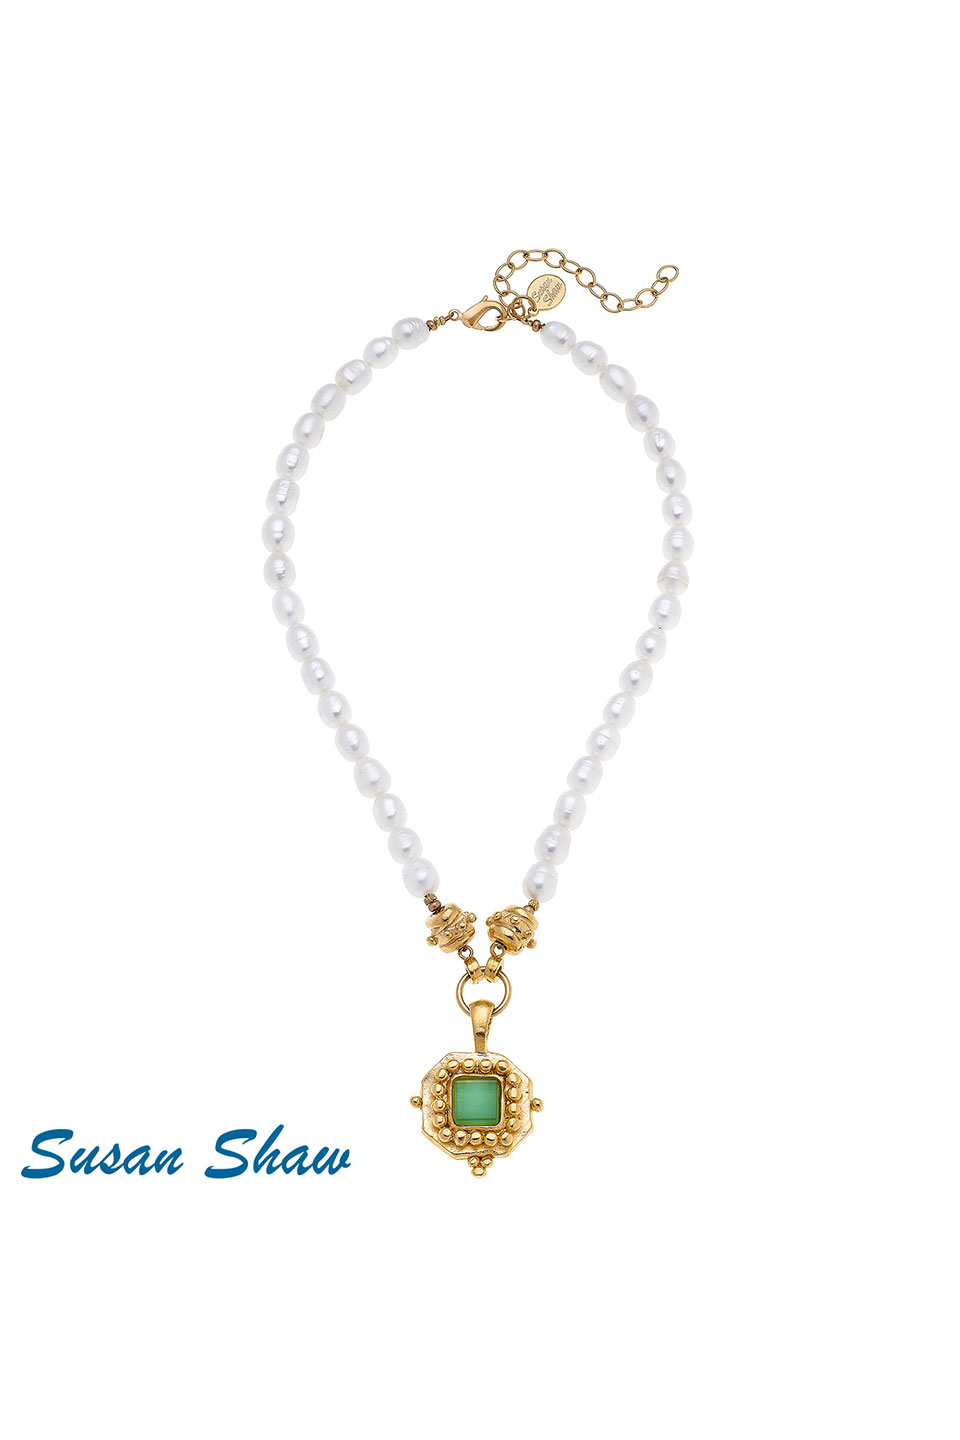 Susan Shaw Handcast Gold Square with Green French Glass on Genuine Pearl Necklace